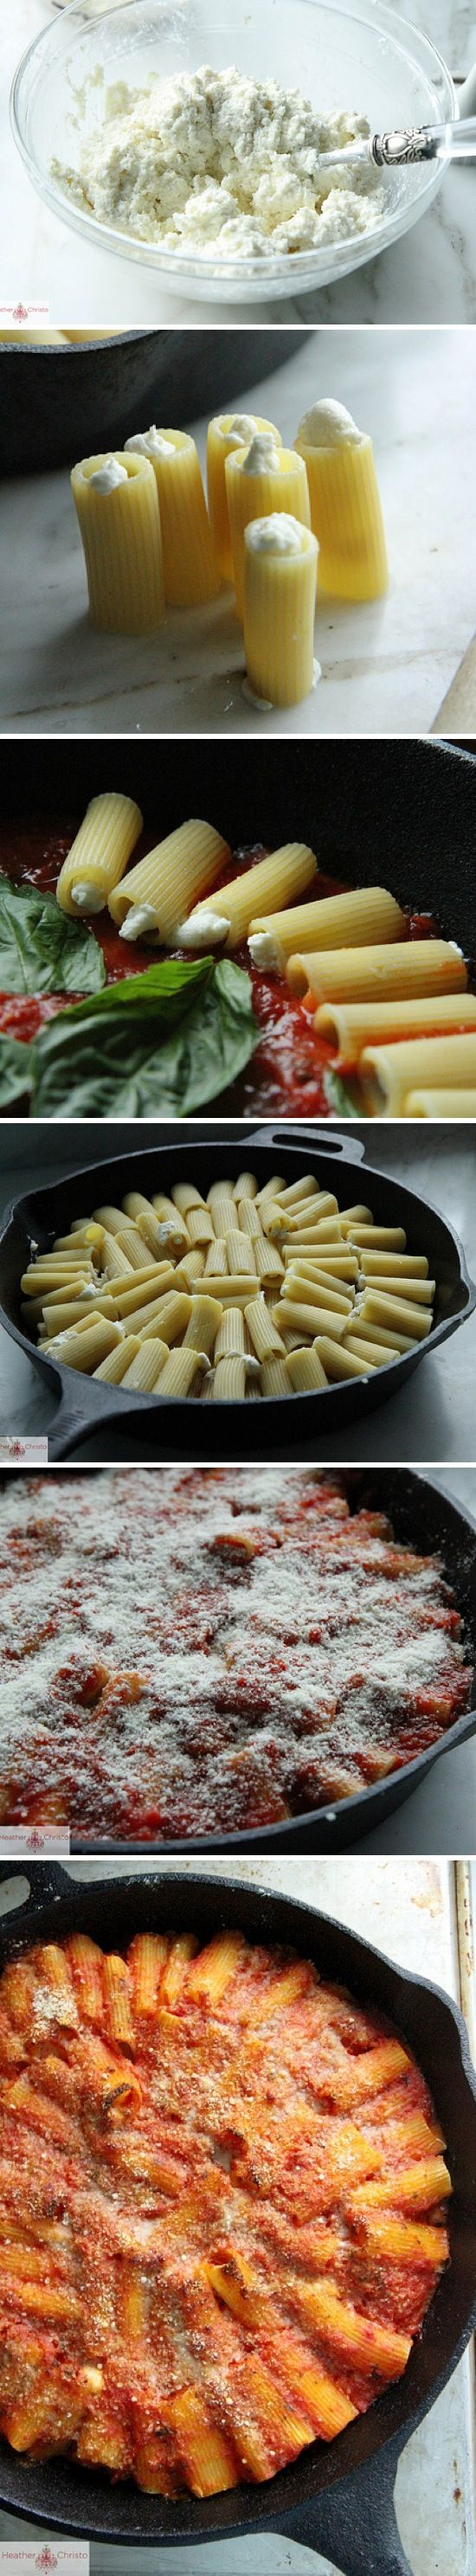 Stuffed Rigatoni - yum! ~~ this should work great in the baking pan!! enough for second helping?? :)